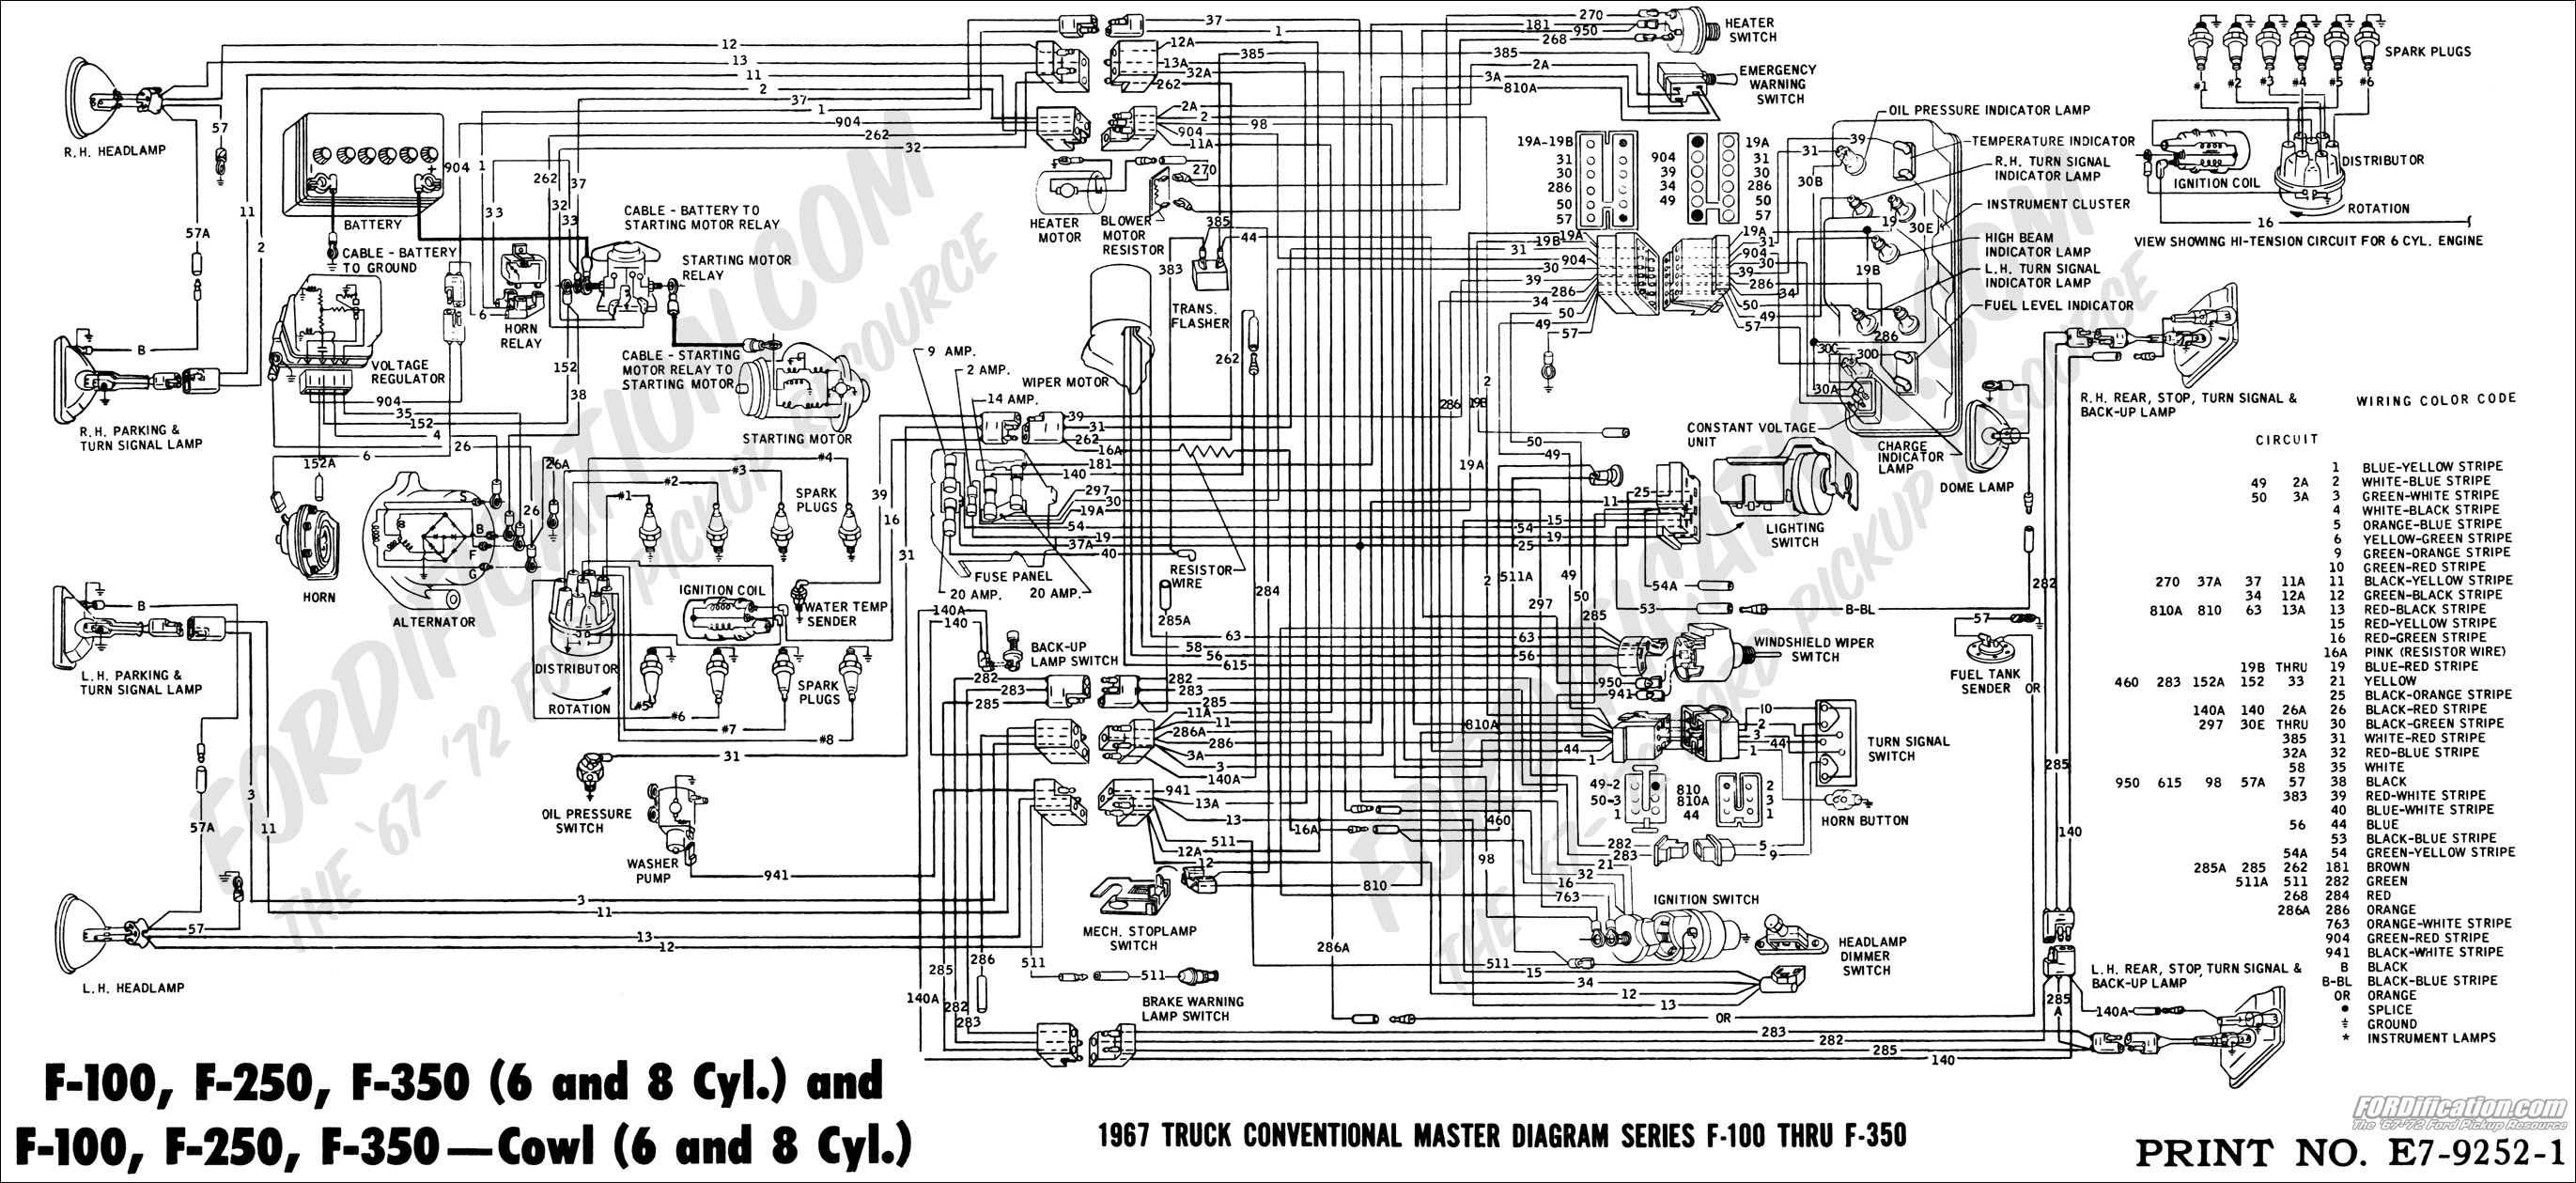 1979 Ford F250 Wiring Diagram Wiring Diagram